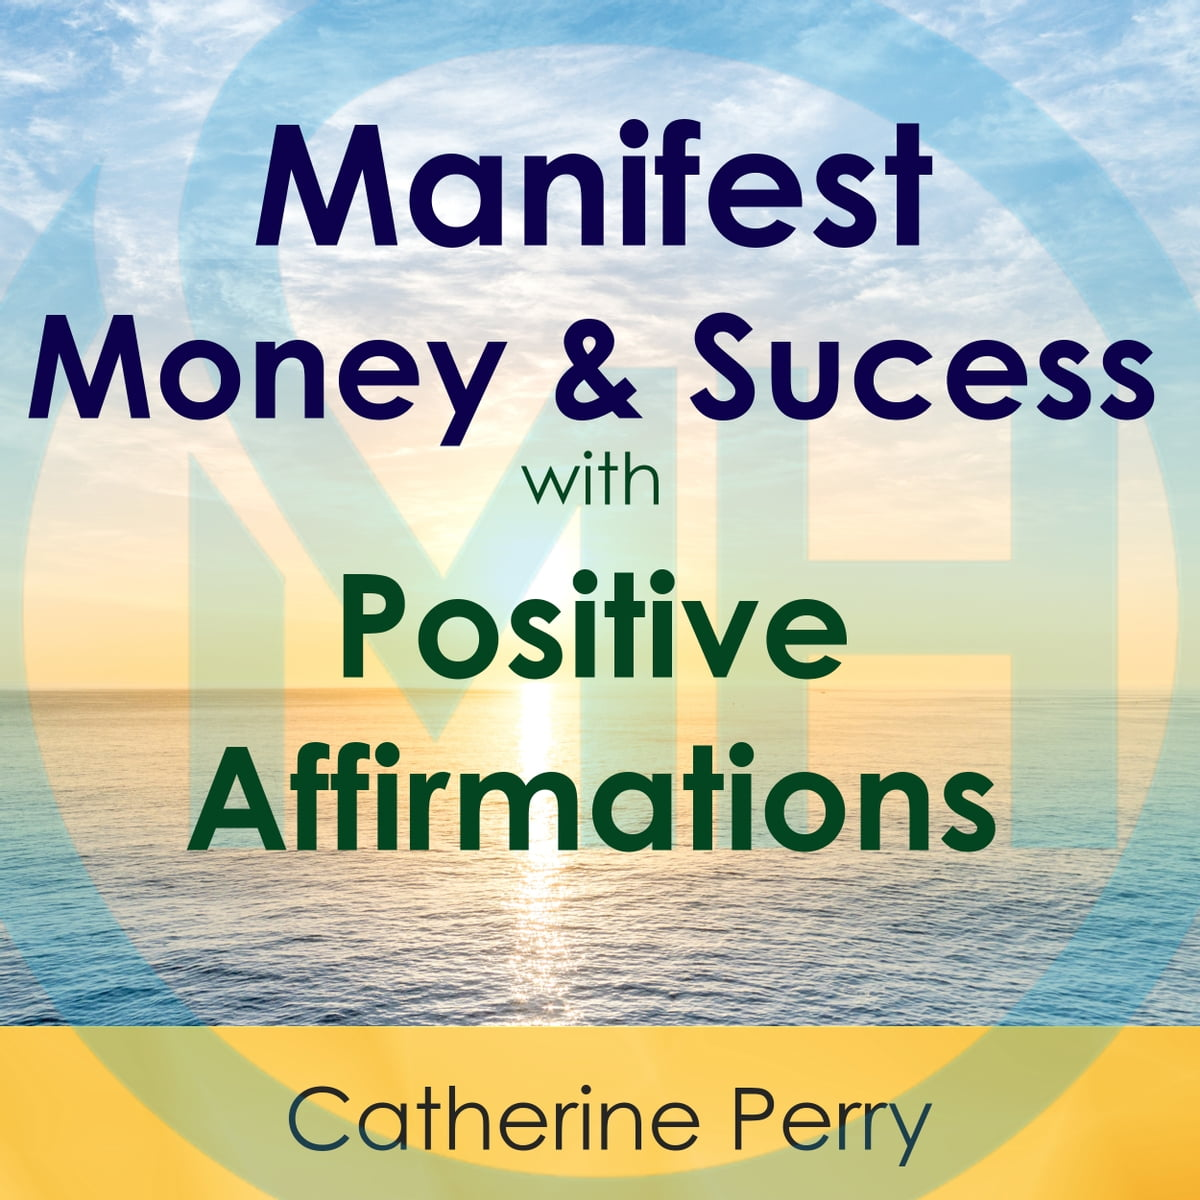 10 Positive Affirmations to Manifest Abundance in Your